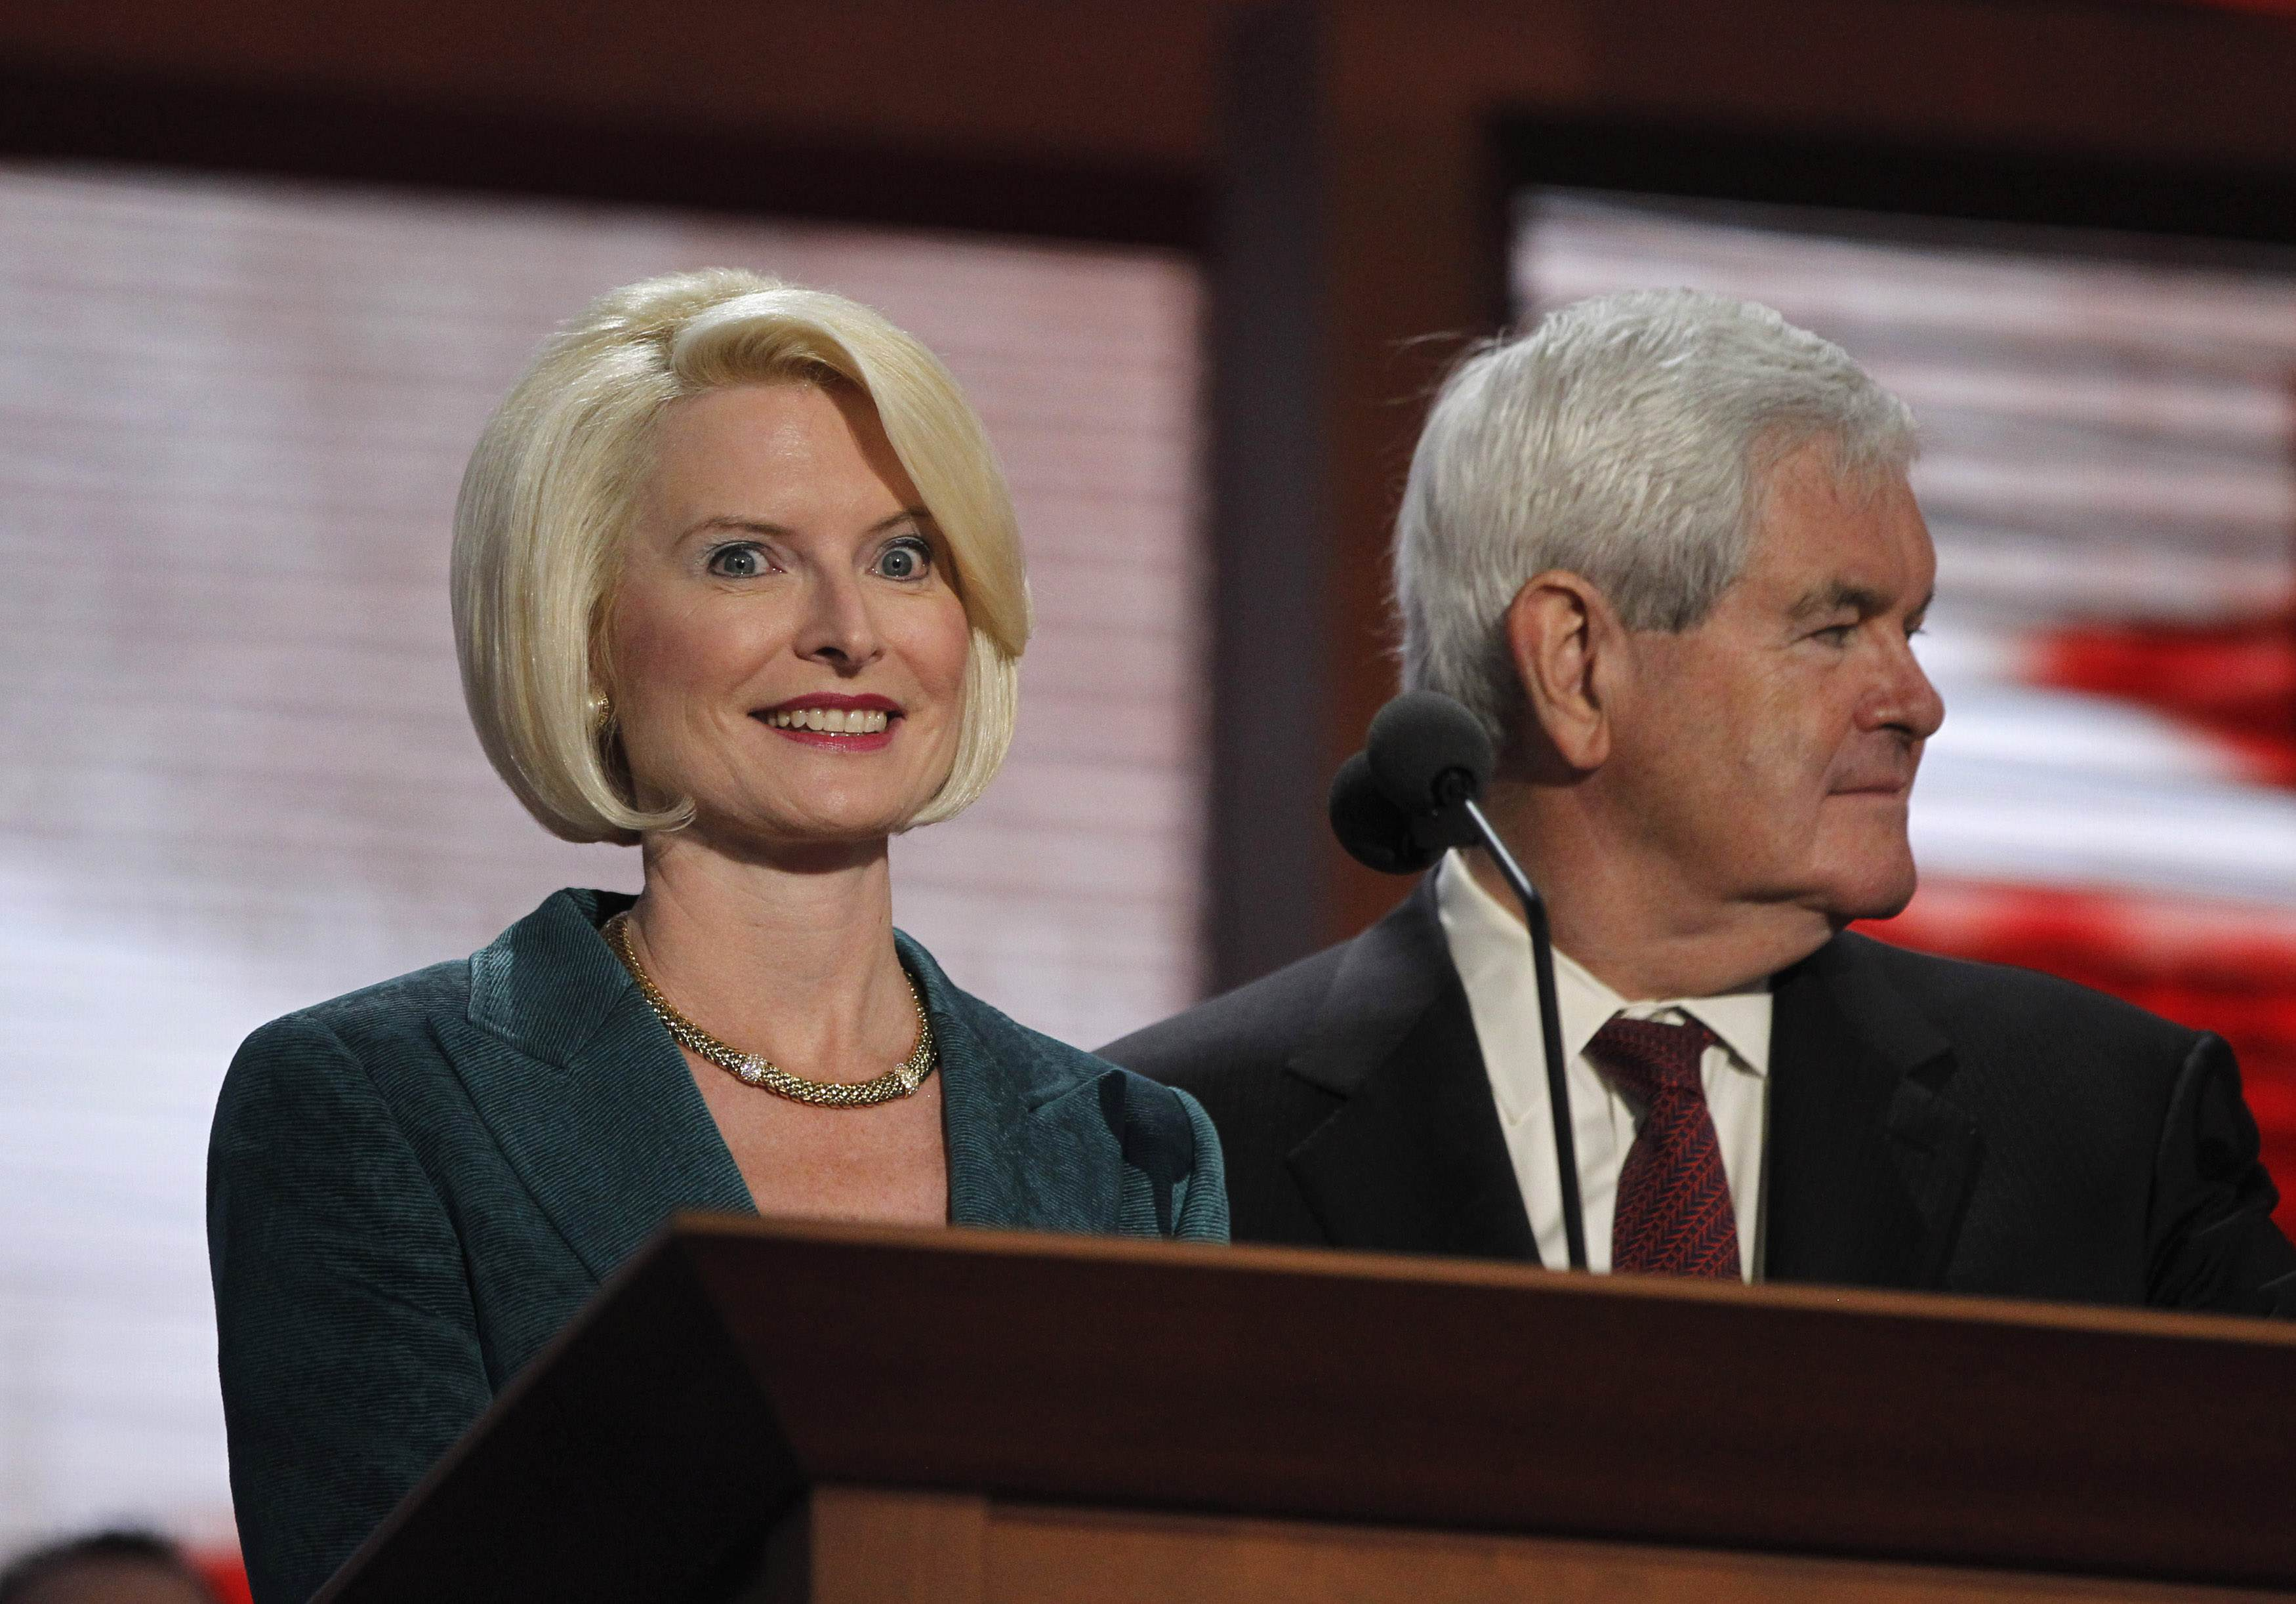 The Gingriches during a sound check at the RNC (Jason Reed/Reuters)